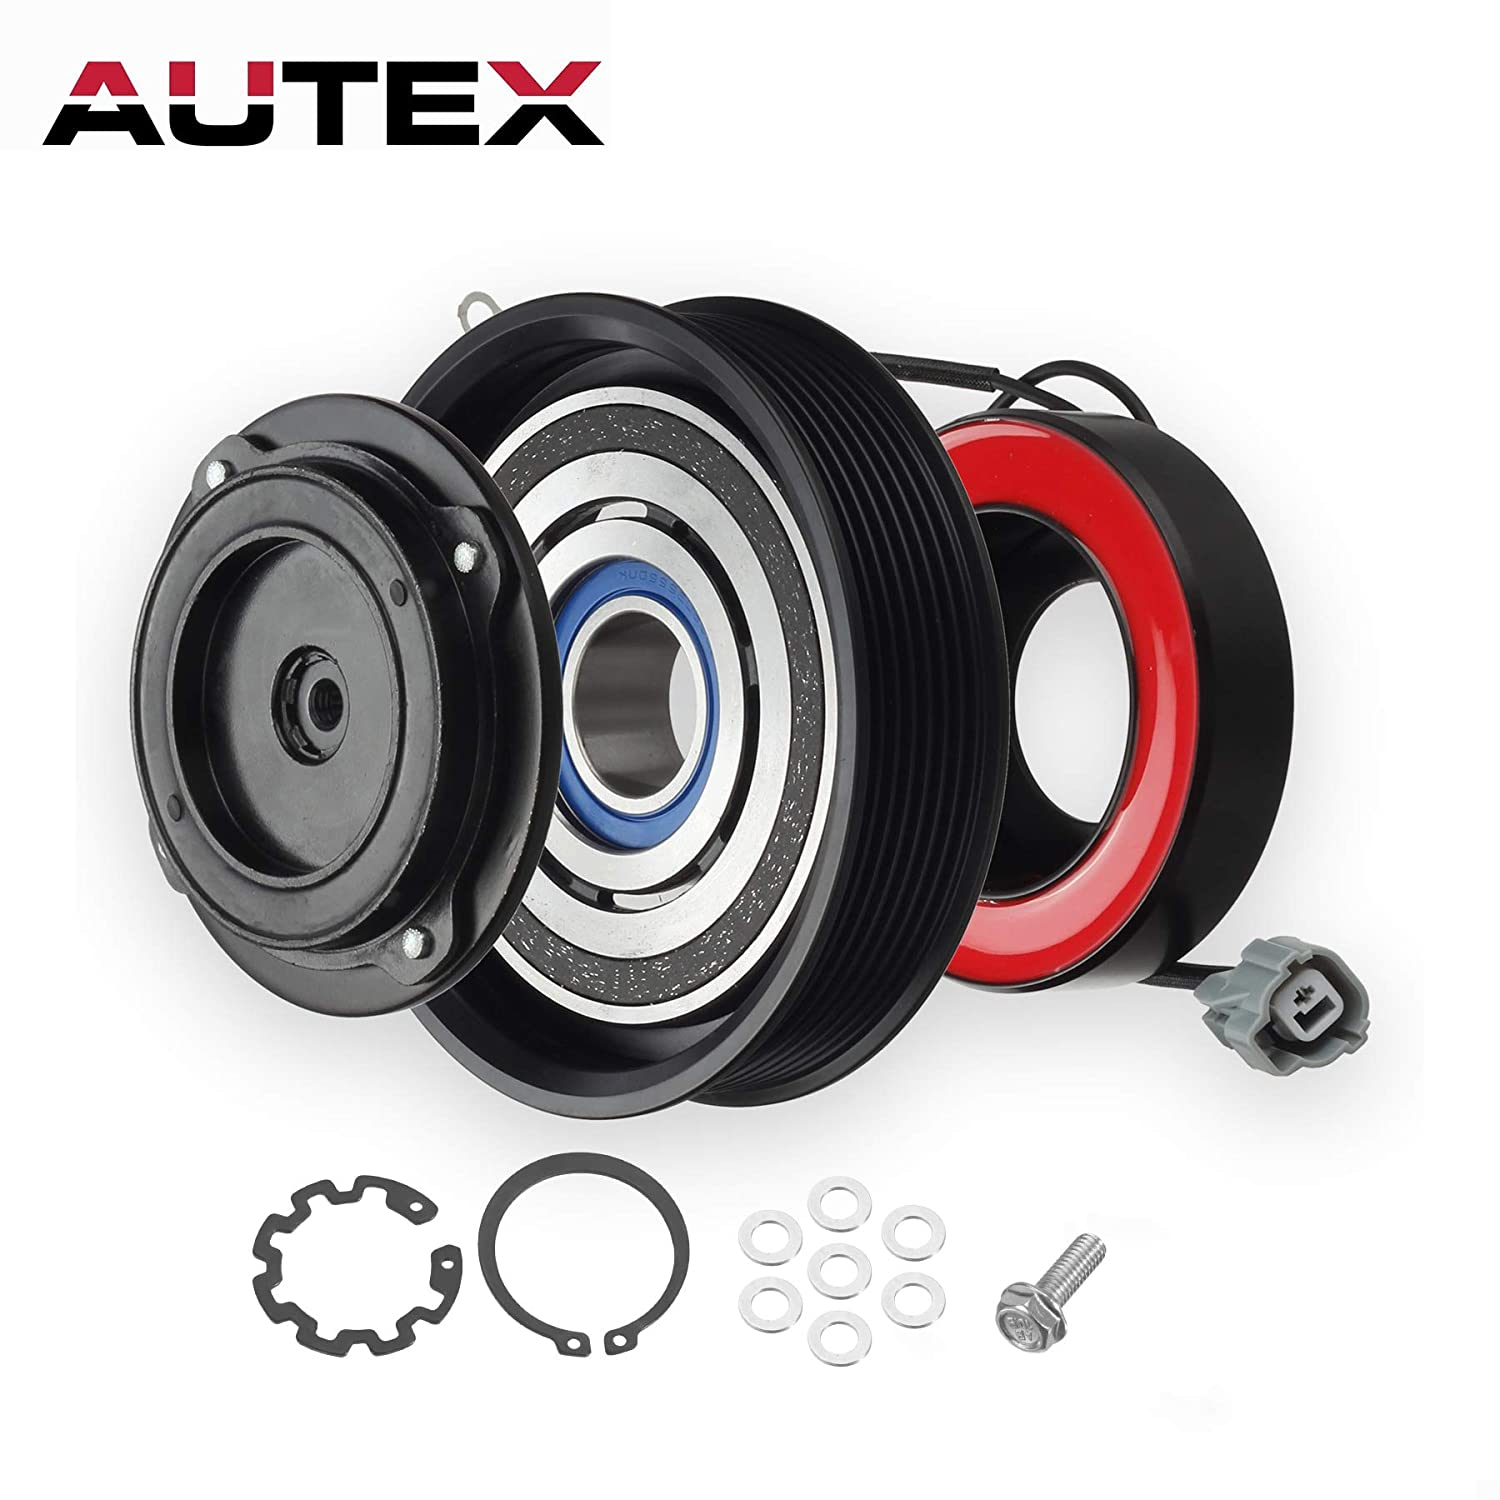 AUTEX AC A/C Compressor Clutch Coil Assembly Kit 38810RAAA01 4710537 10000628 Replacement for 2003 2004 2005 2006 2007 Honda Accord 2.4L